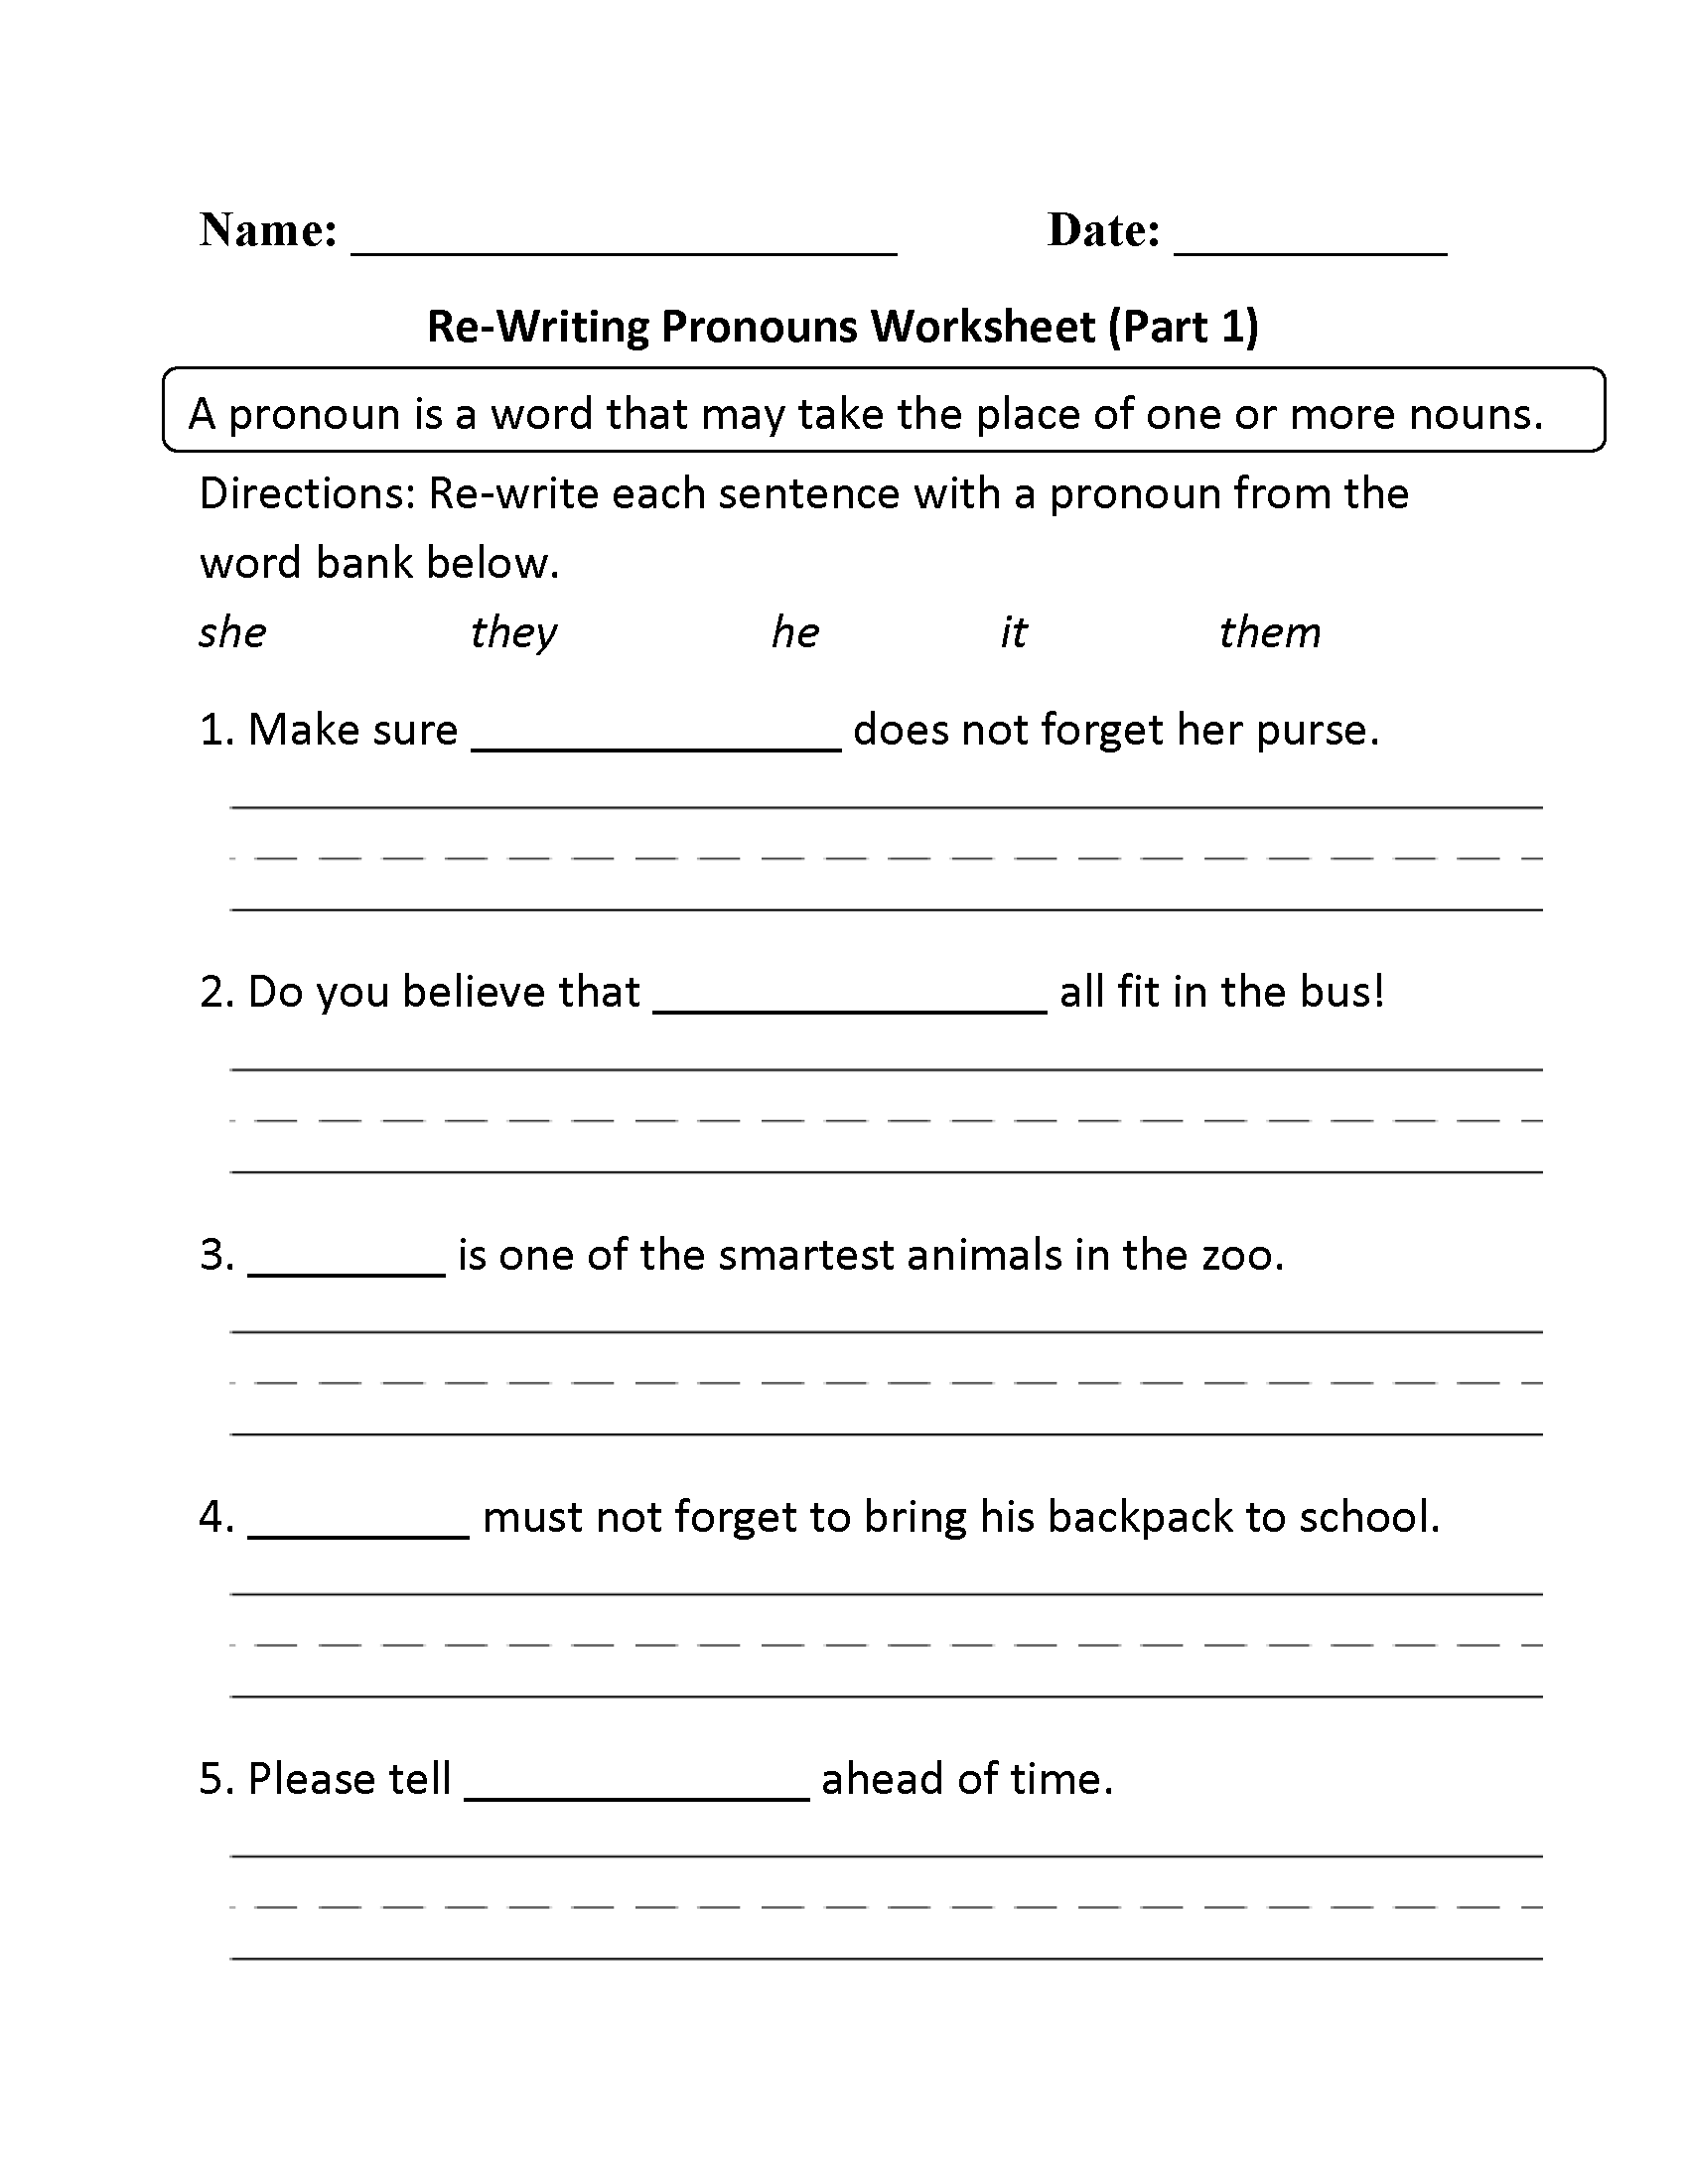 Worksheets Pronoun Worksheets 2nd Grade pronouns worksheets regular worksheet part 1